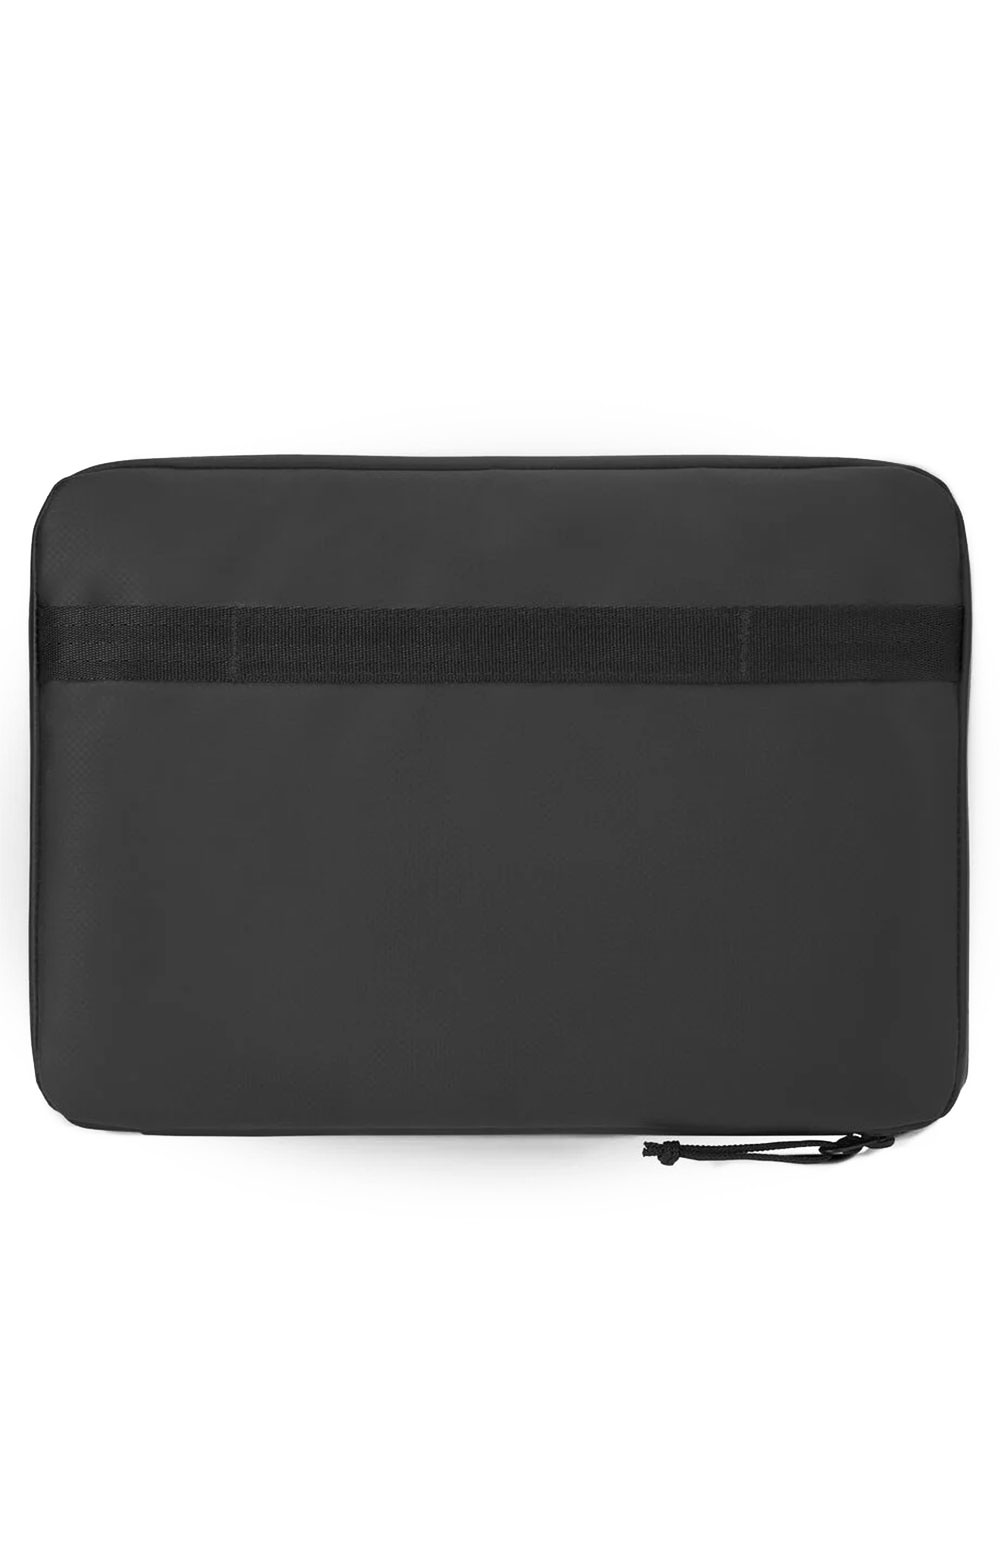 (AC-188-BK) Medium Laptop Sleeve - Black 2